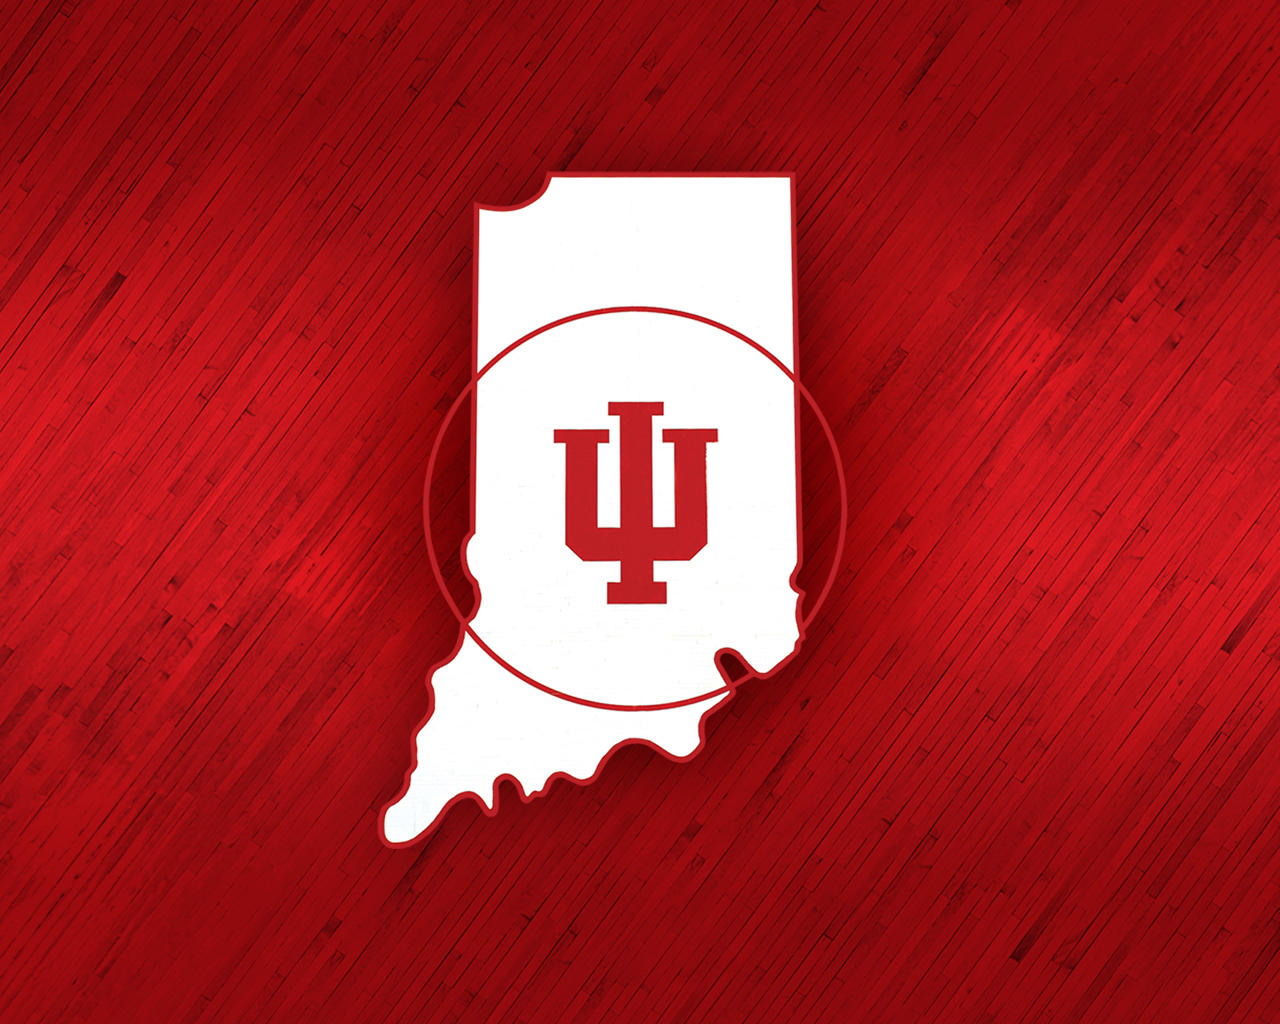 Iu Basketball Desktop Wallpaper Screensavers Download 1280x1024